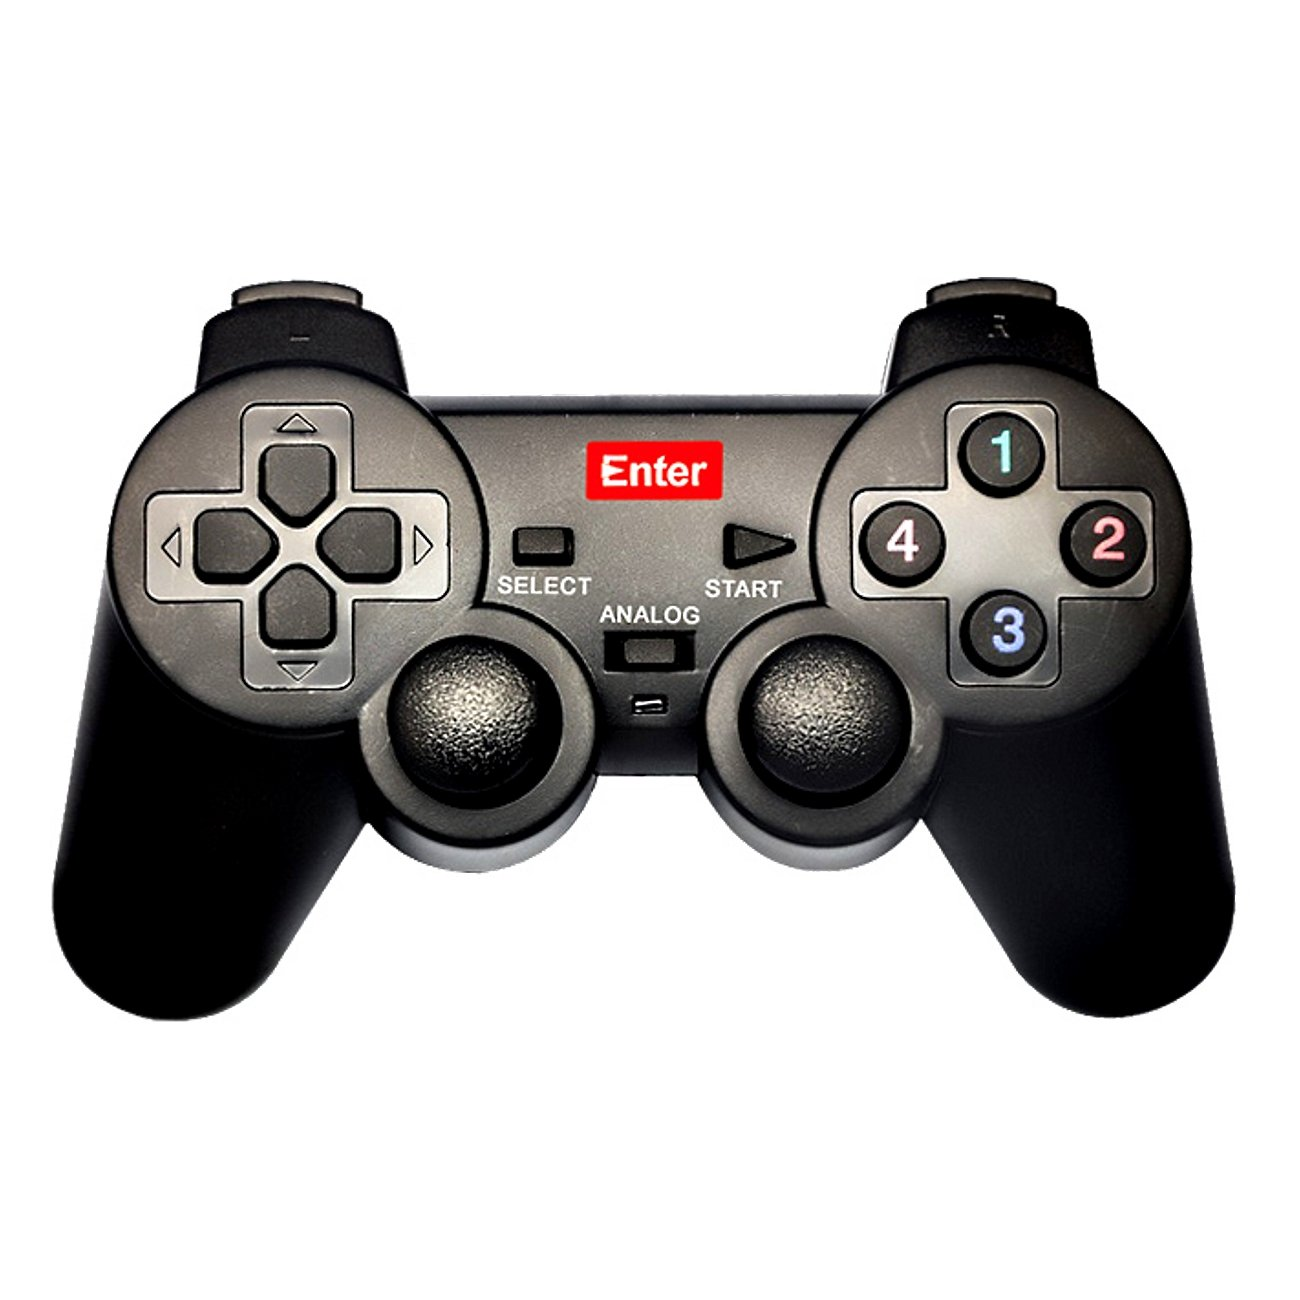 Amazon.in: Buy Enter USB Game pad with Vibration E-GPV Online at Low Prices in India | Enter Reviews & Ratings